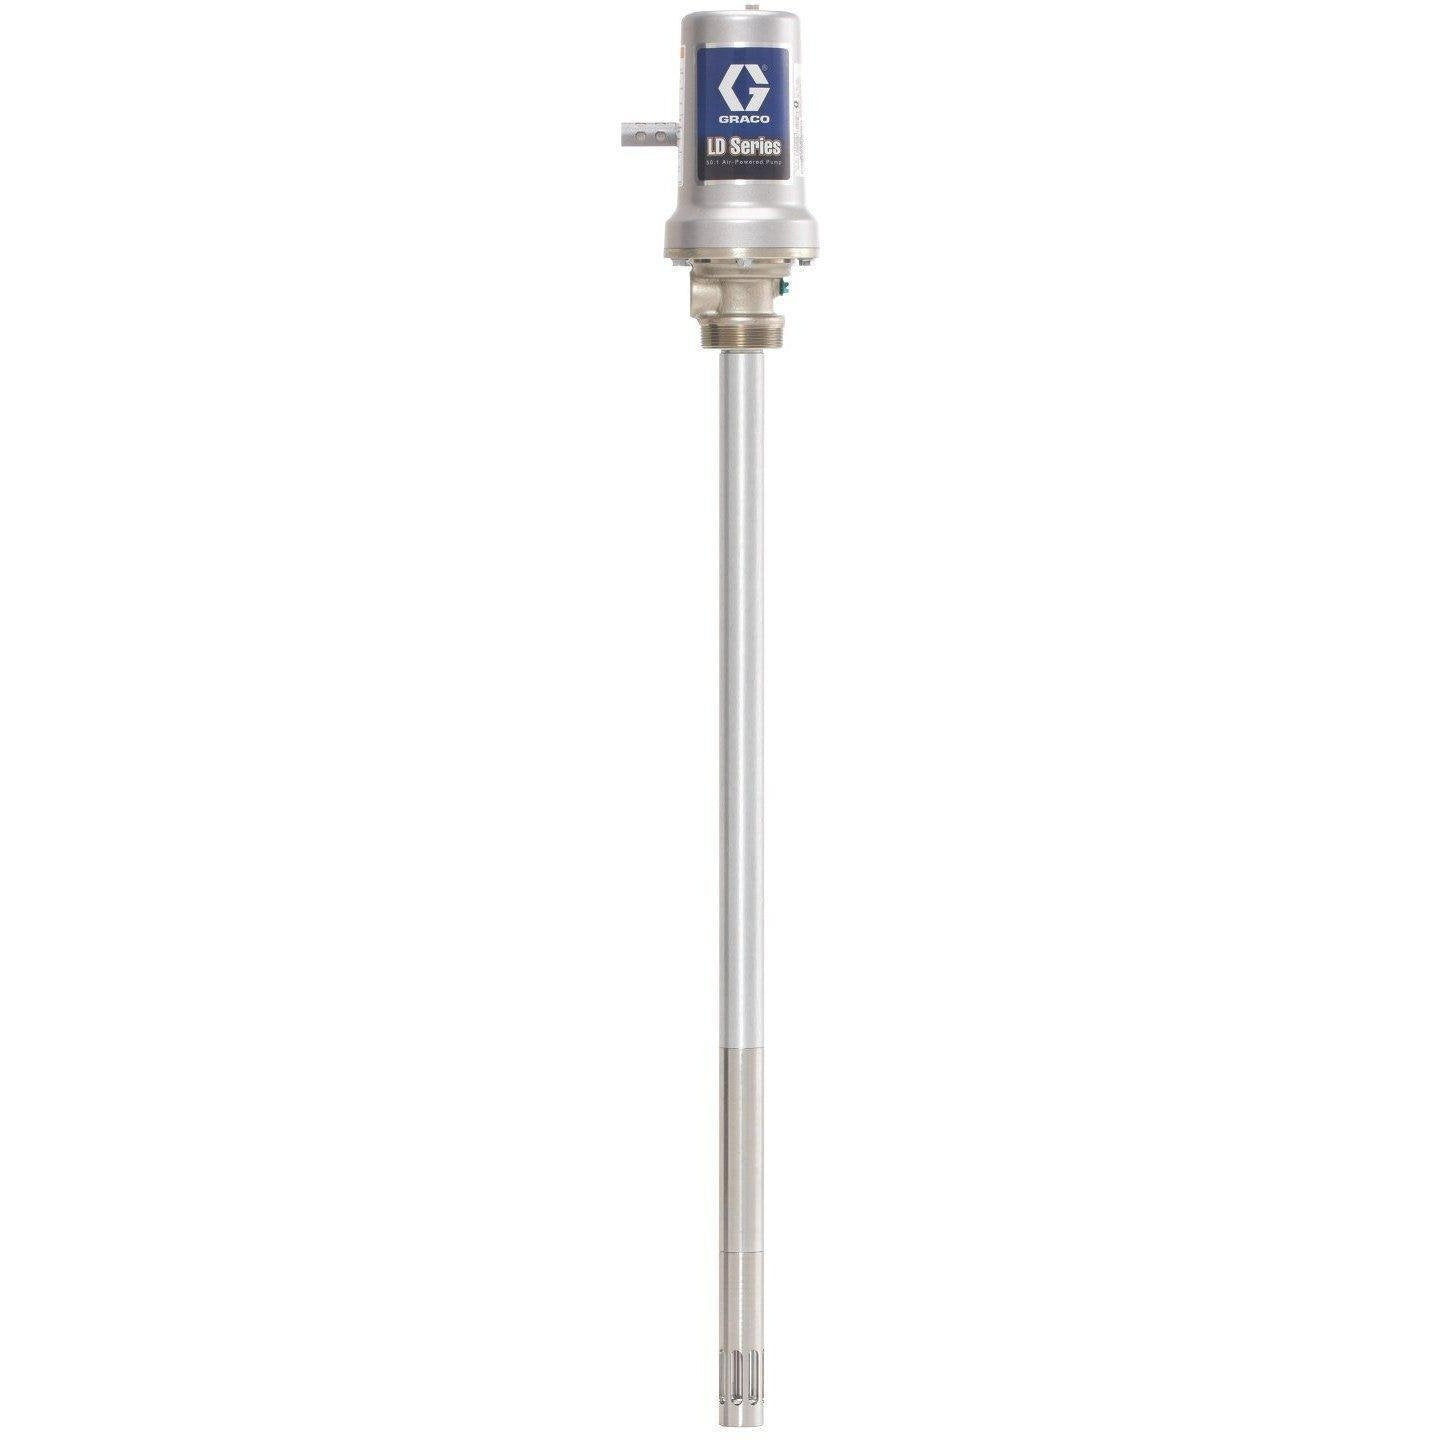 24G603-Graco 24G603 Ld Series 50:1 Pump For 120 Lb. Pail - Npt-Order-Online-Fireball-Equipment